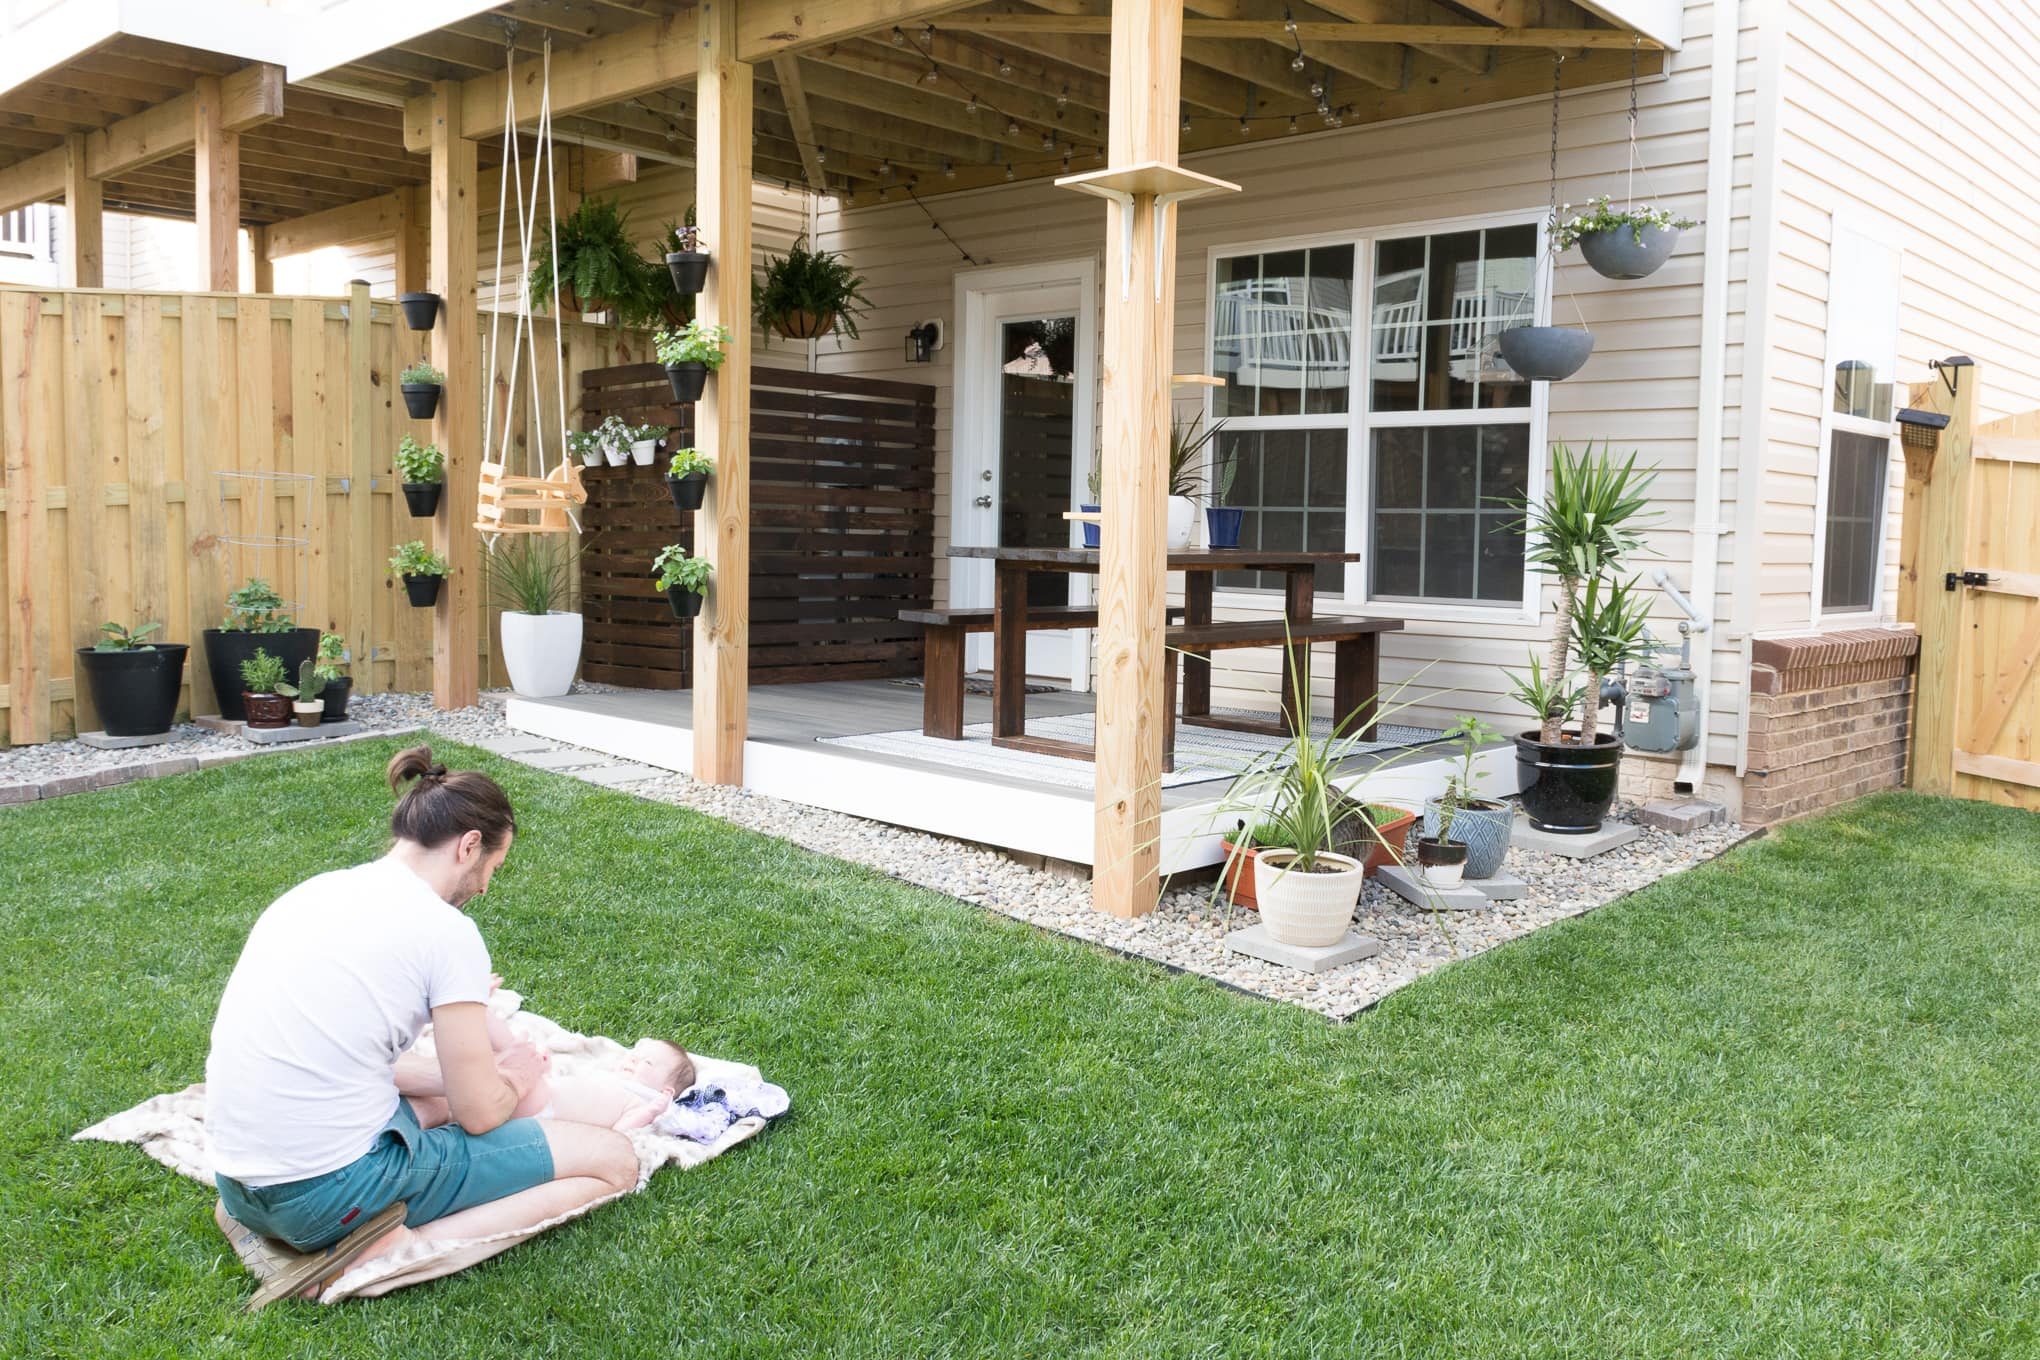 My Tiny Backyard // Modern Design Ideas for a Small Backyard on Modern Landscaping Ideas For Small Backyards  id=56746